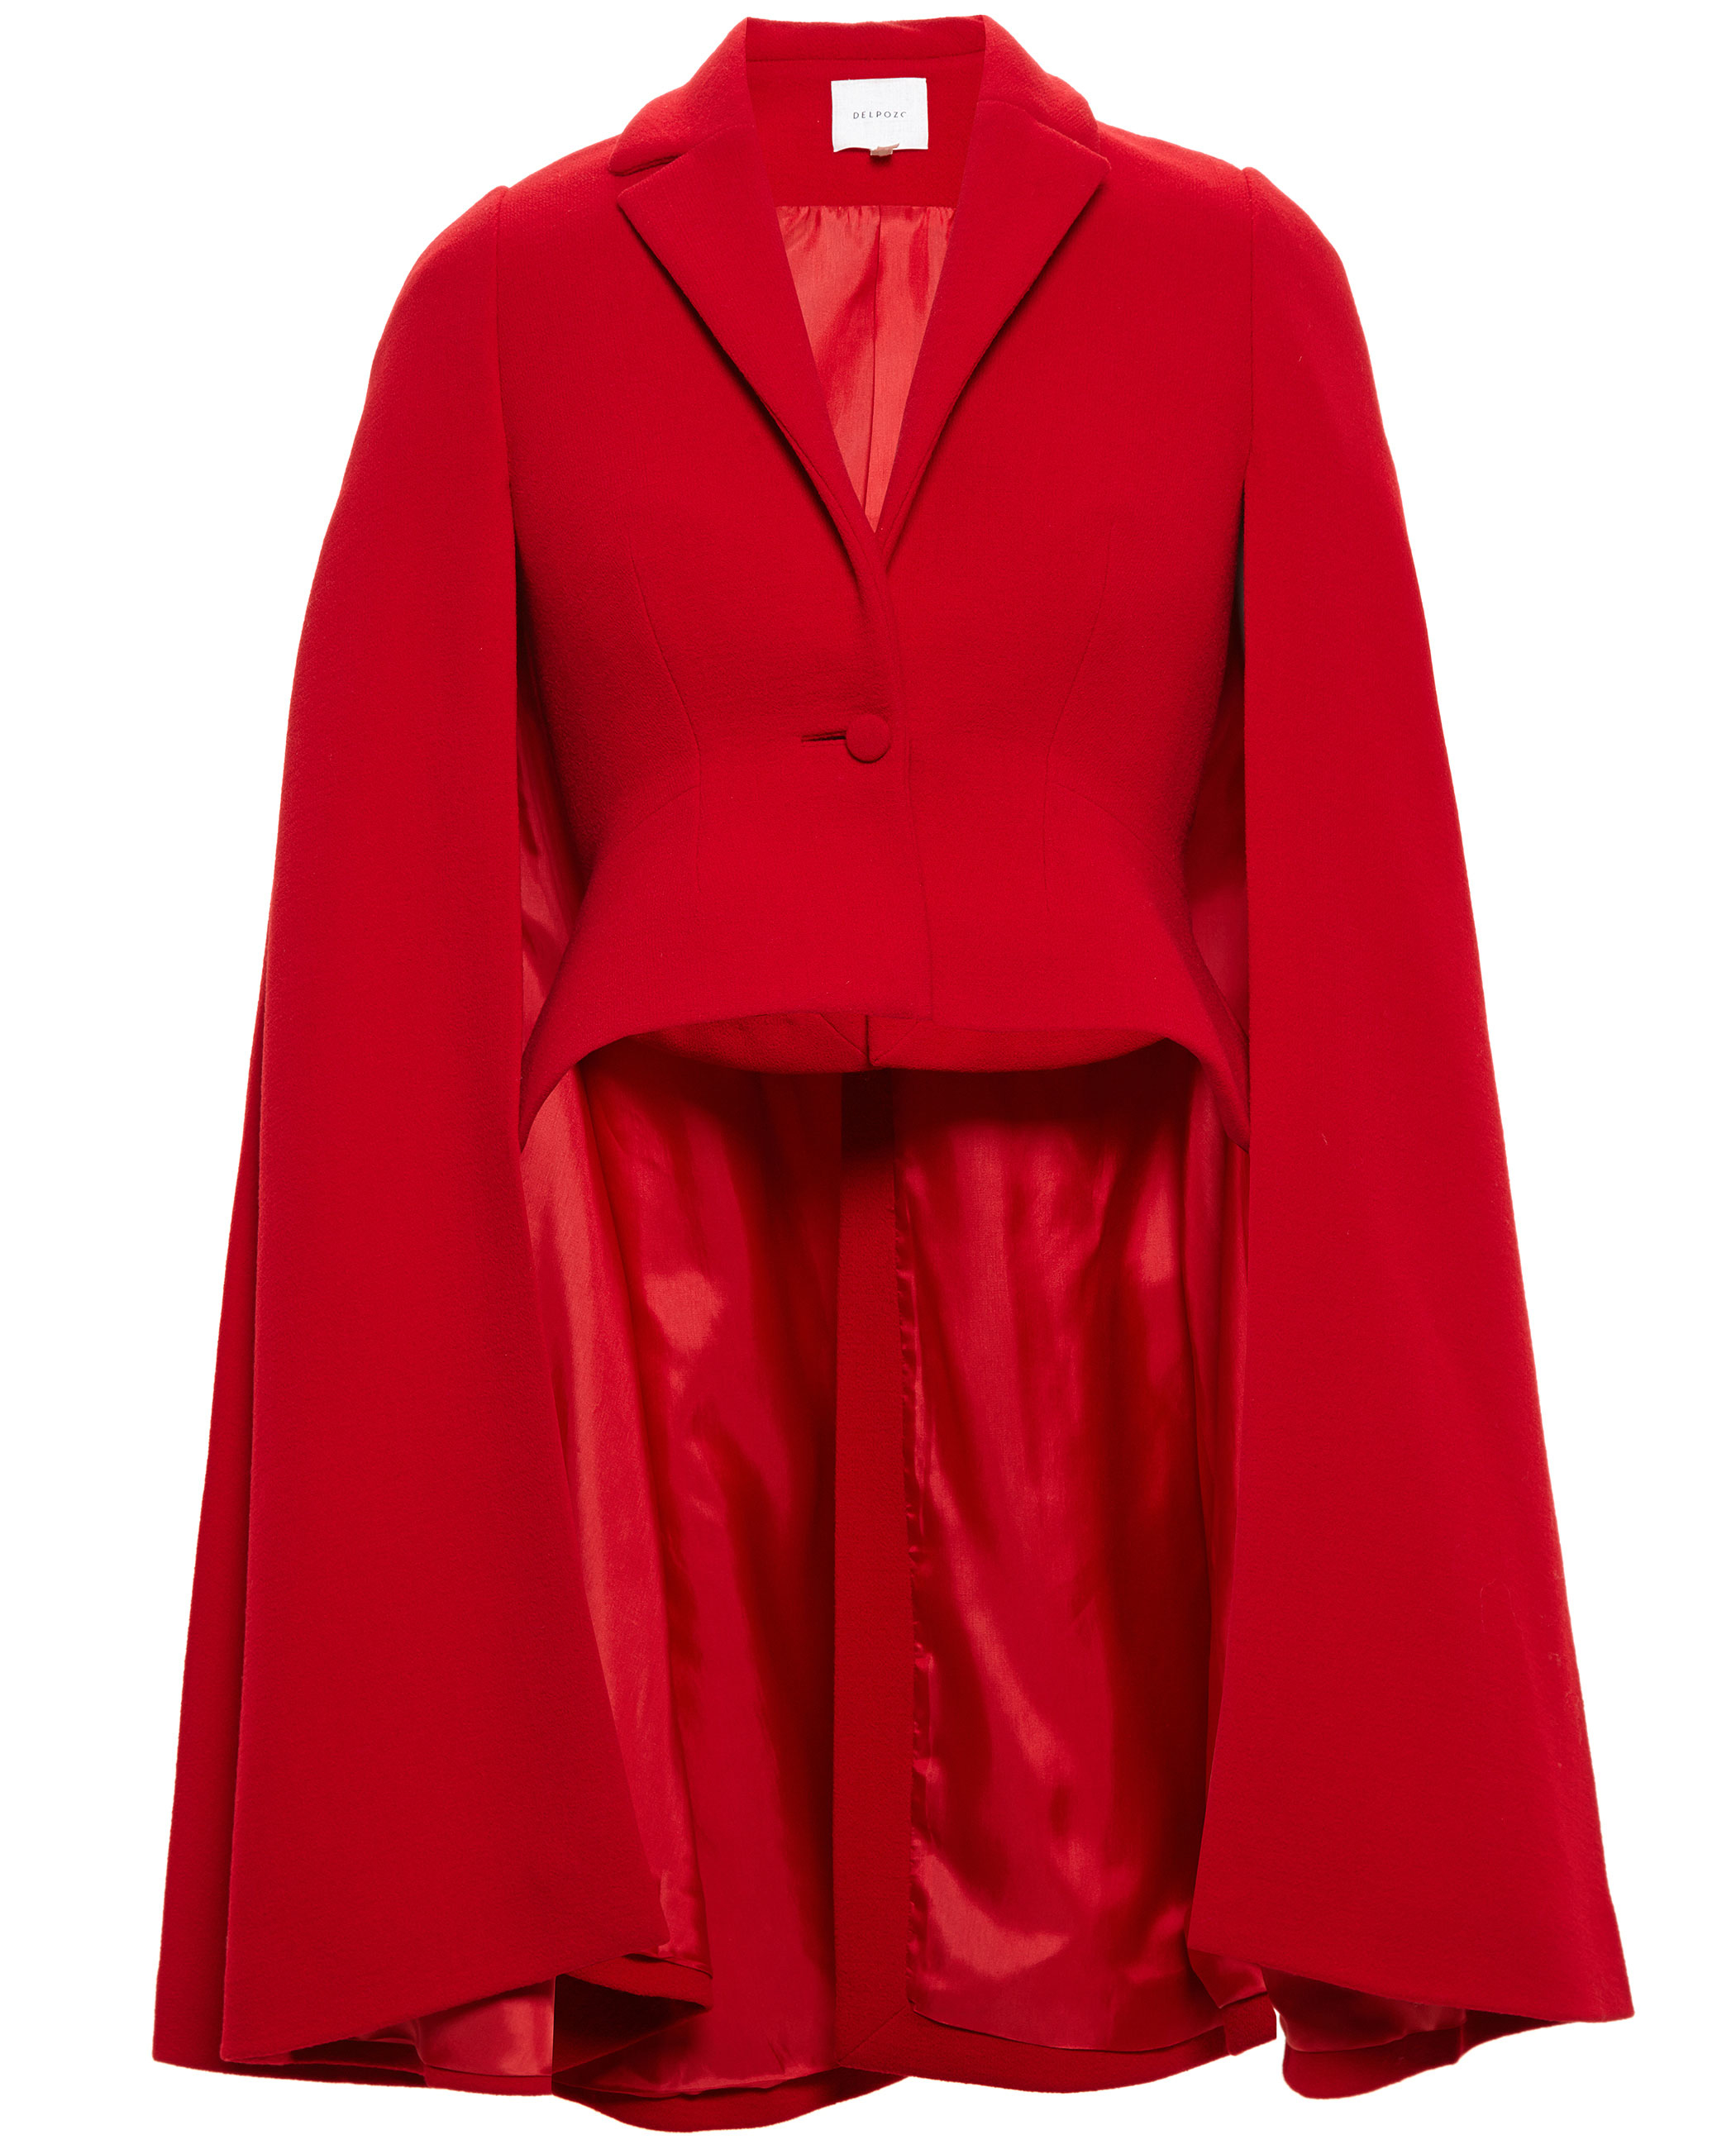 Delpozo Wool Cape Jacket in Red | Lyst